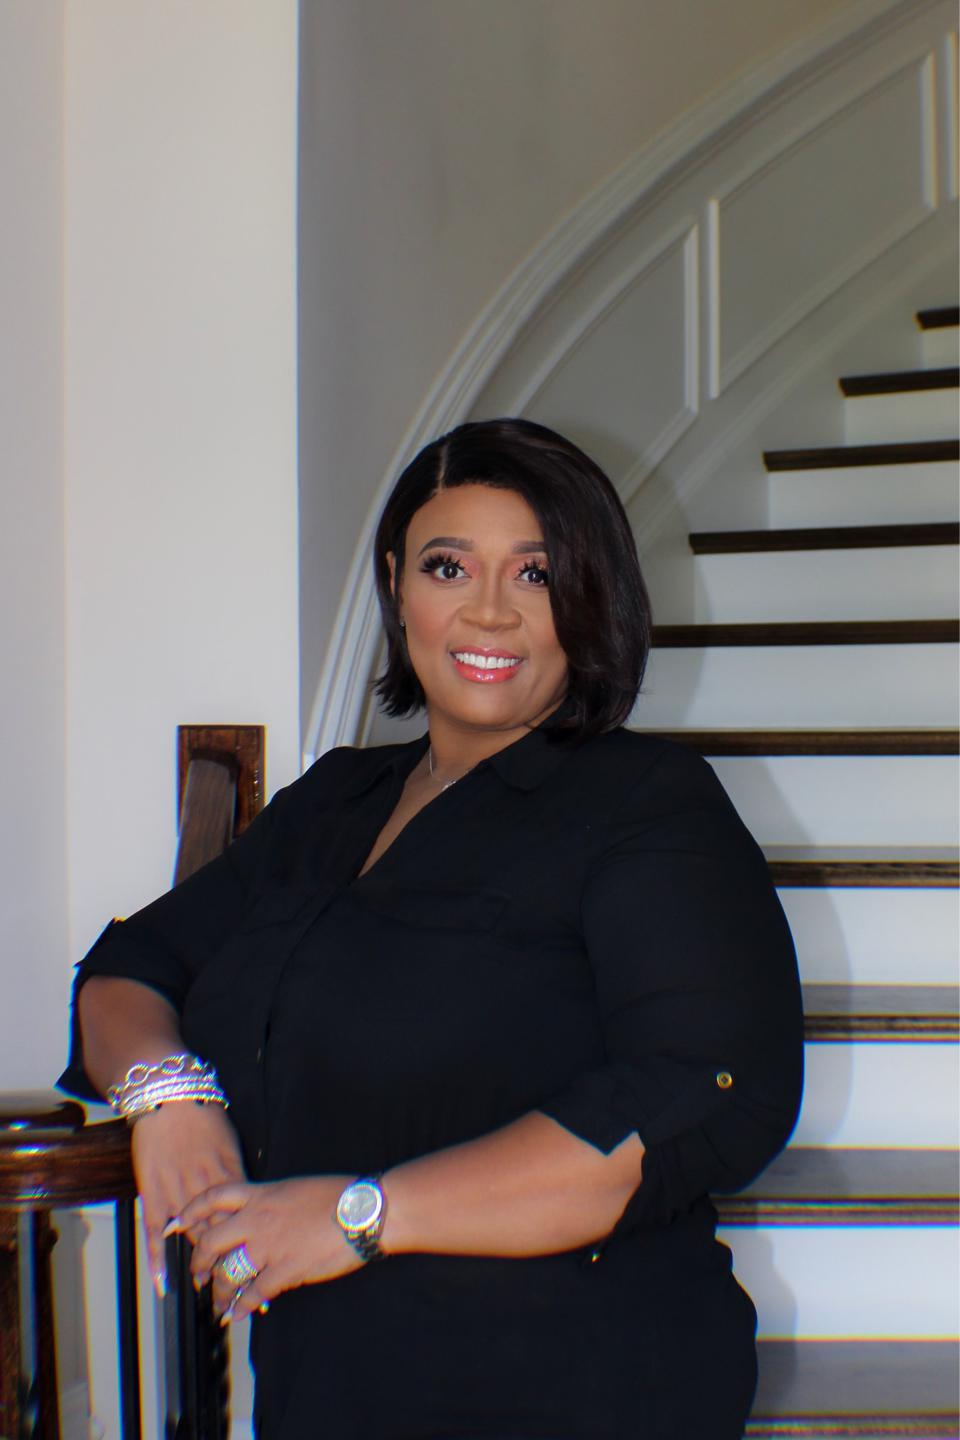 Alniesha Carter, founder, Tax Prep Evolution, Inc.